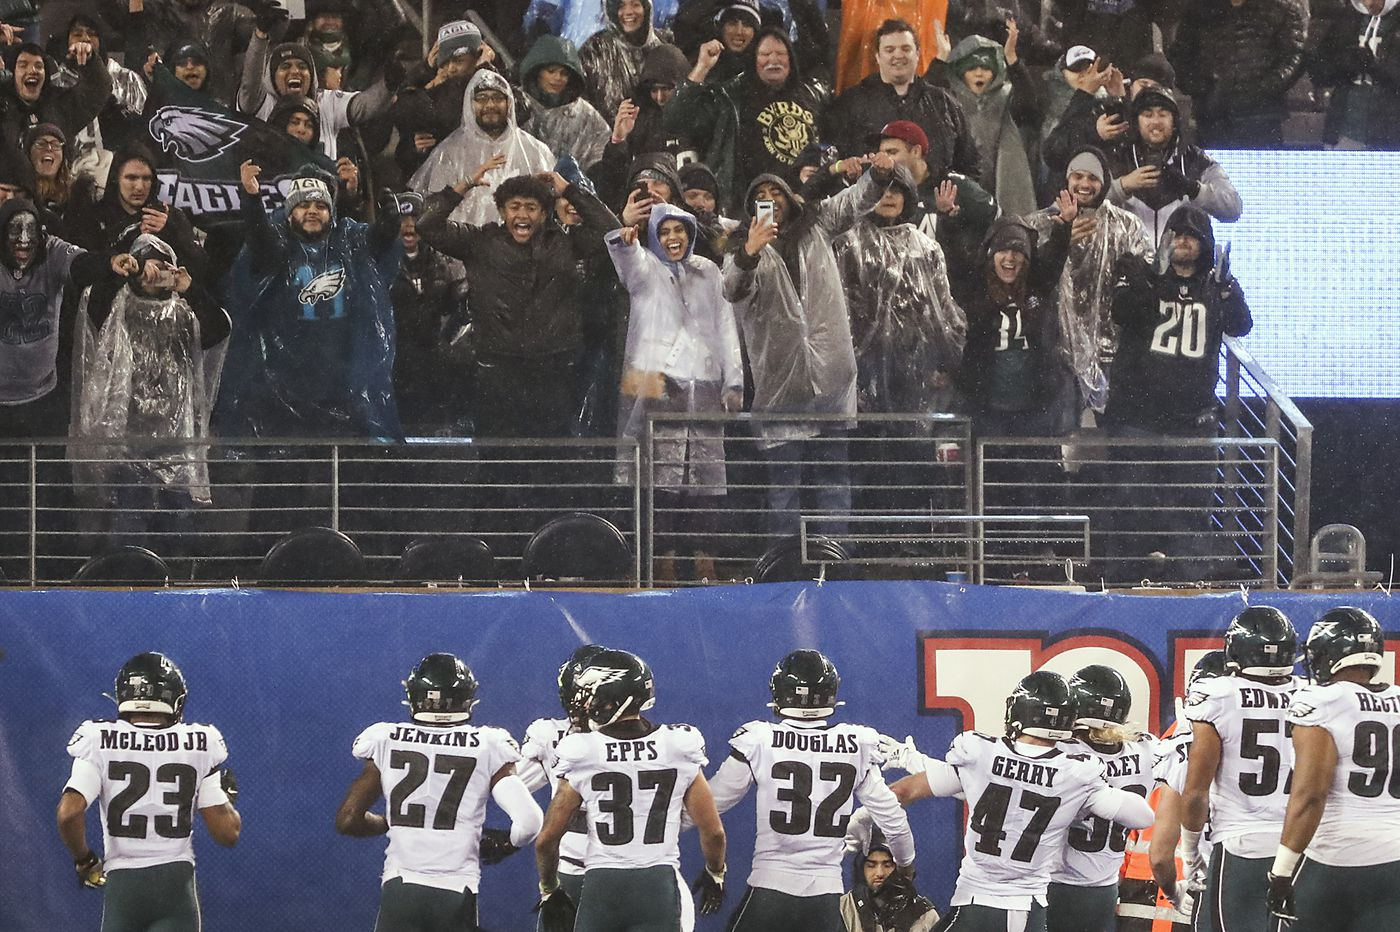 Eagles' NFC East title all the more sweet after adversity, players say | Early Birds